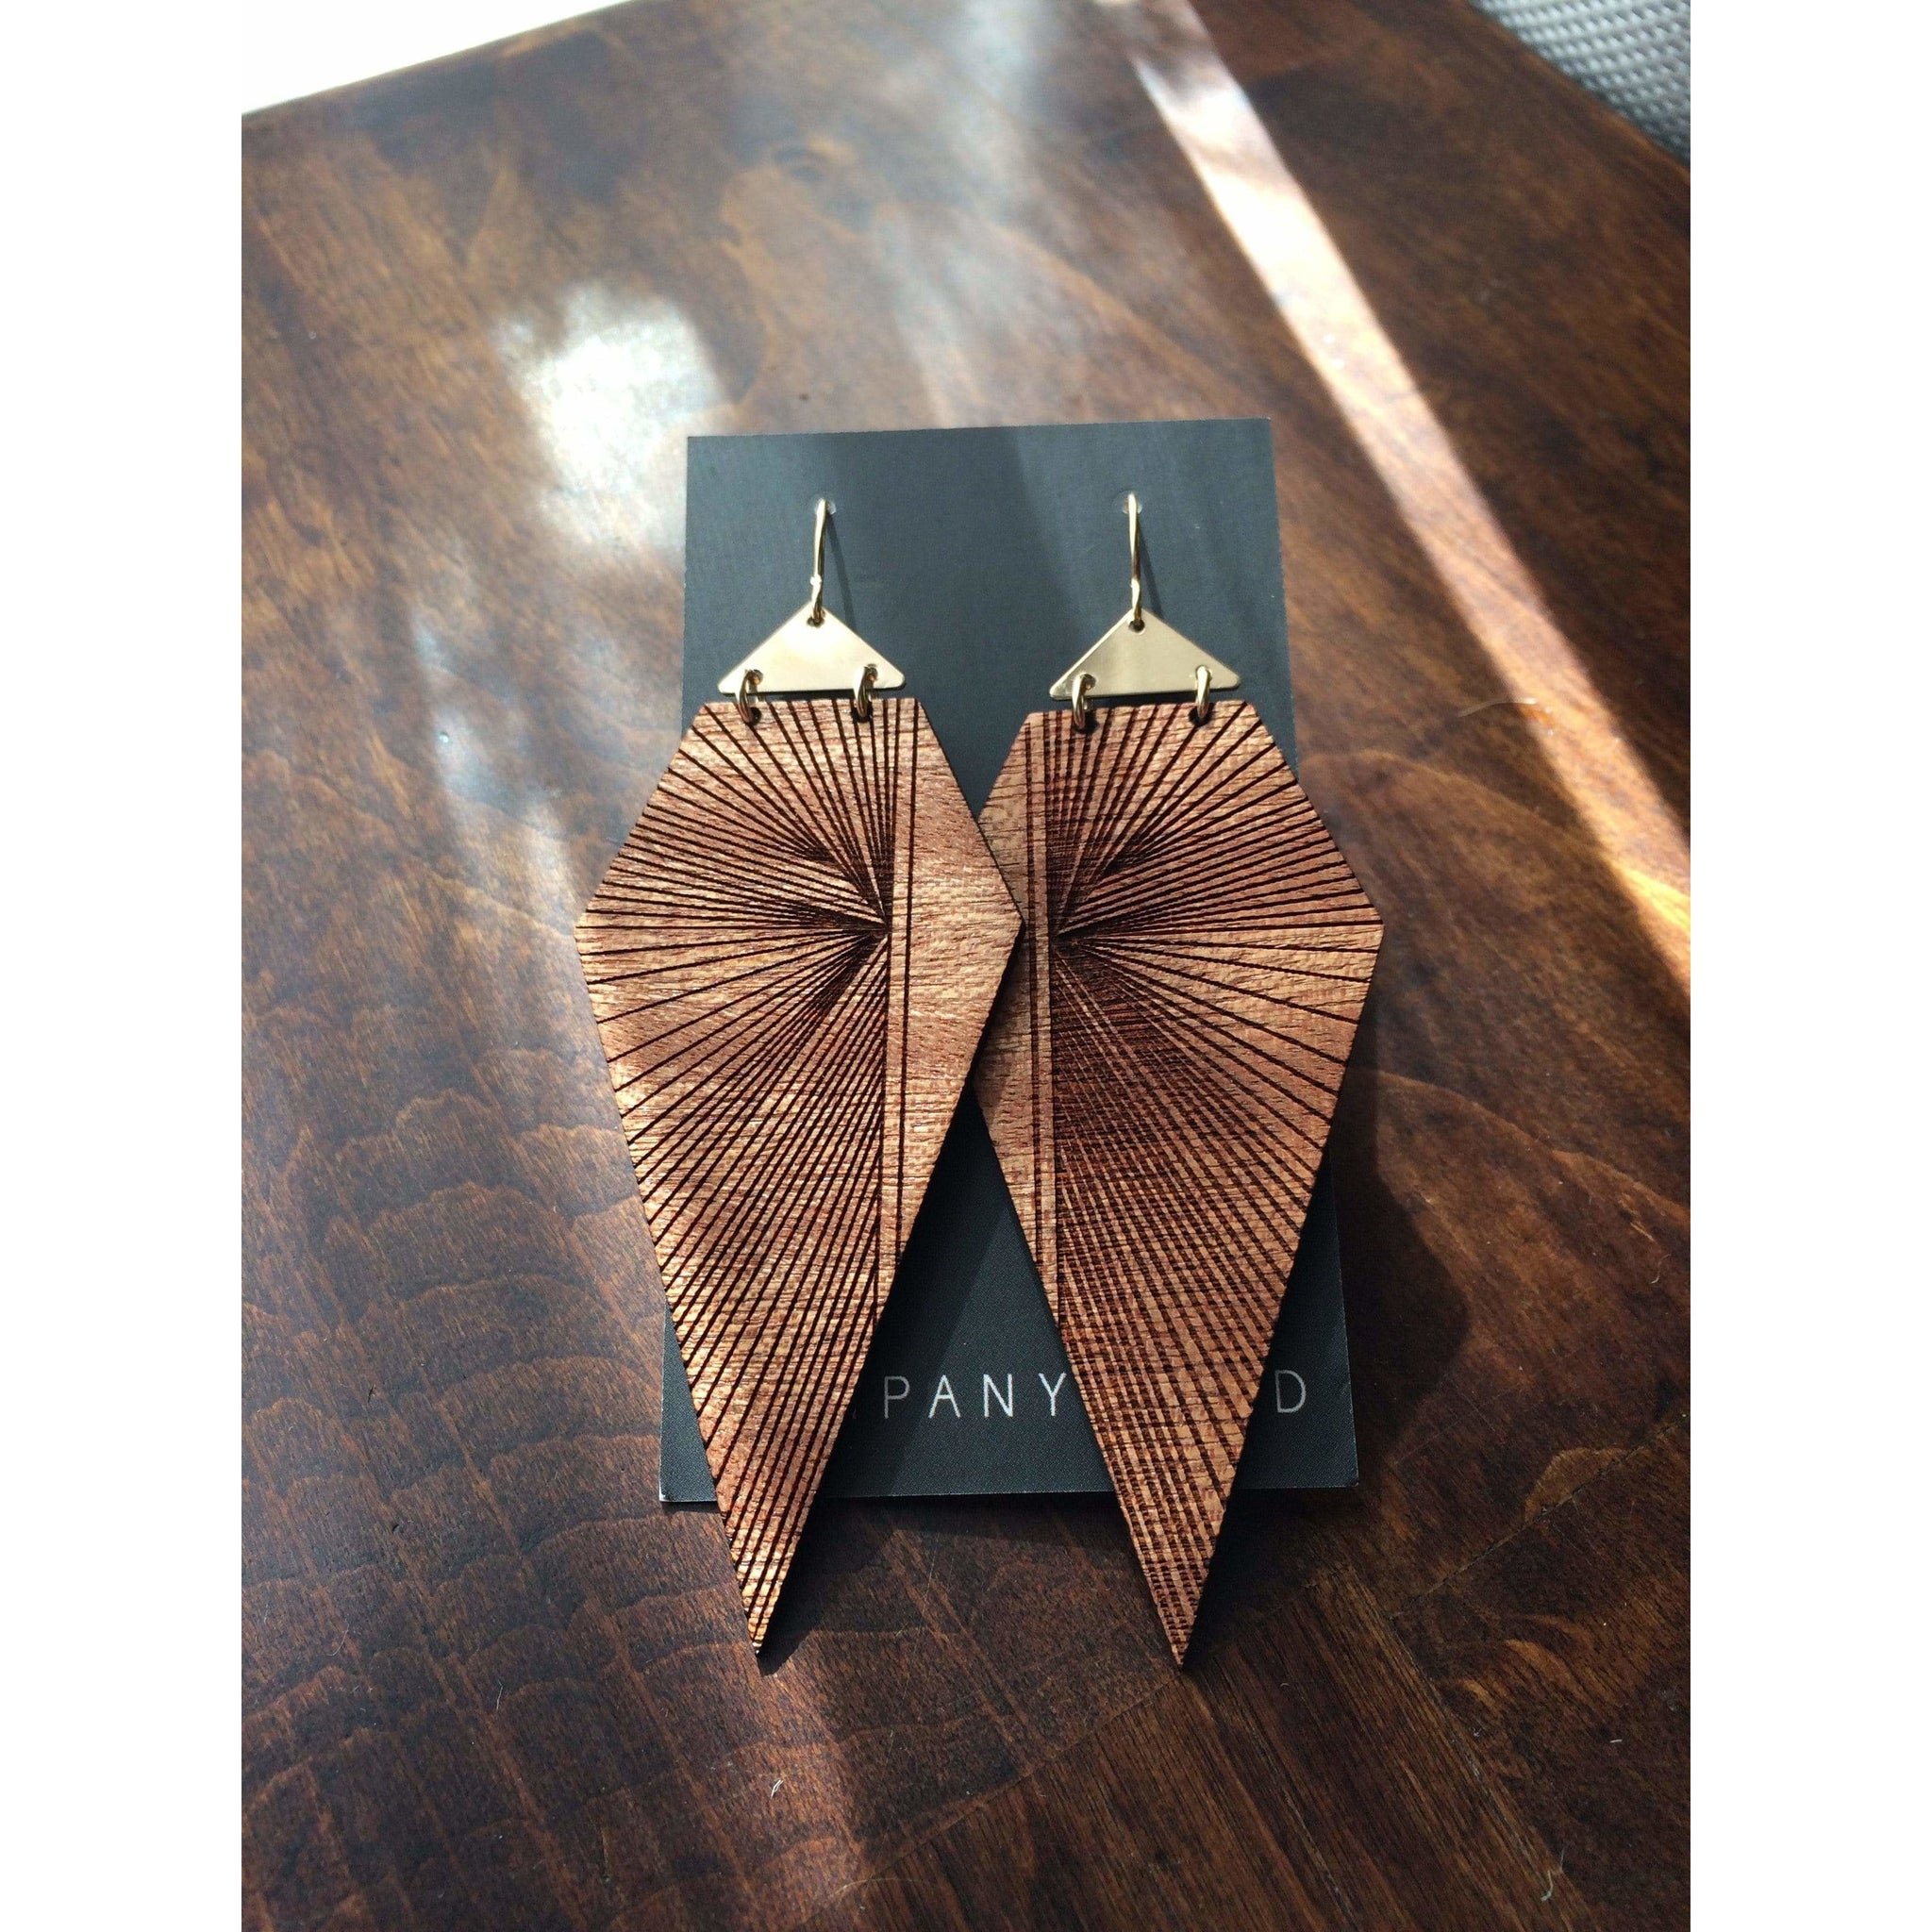 Company Kind Earrings Prism Wood Earrings